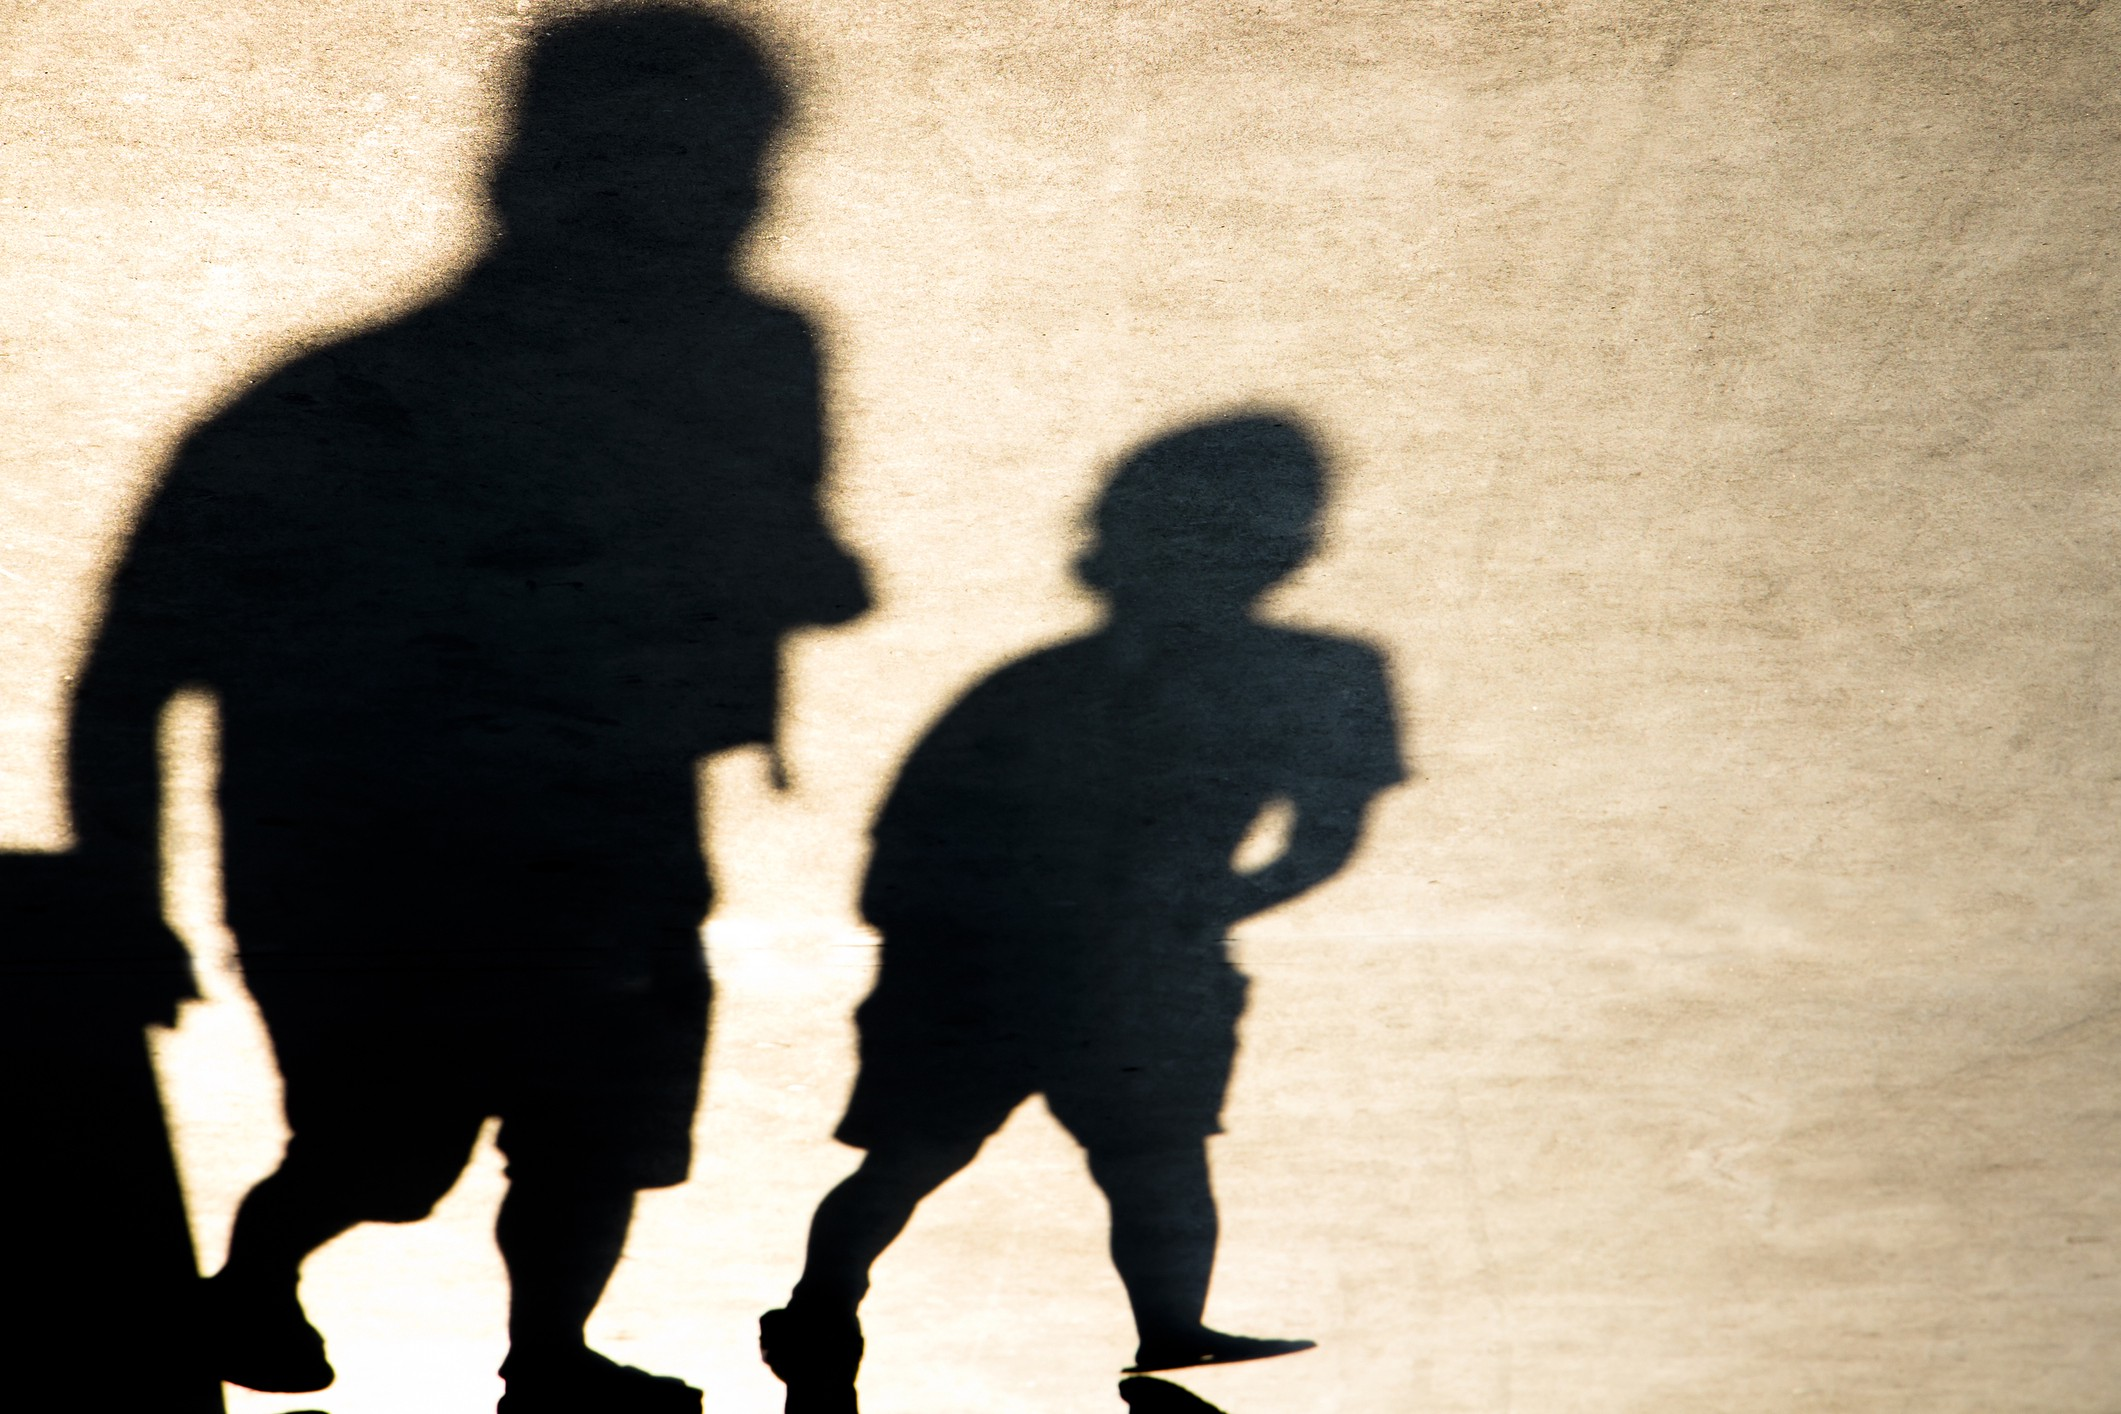 Shadows of an older person and younger person walking together.